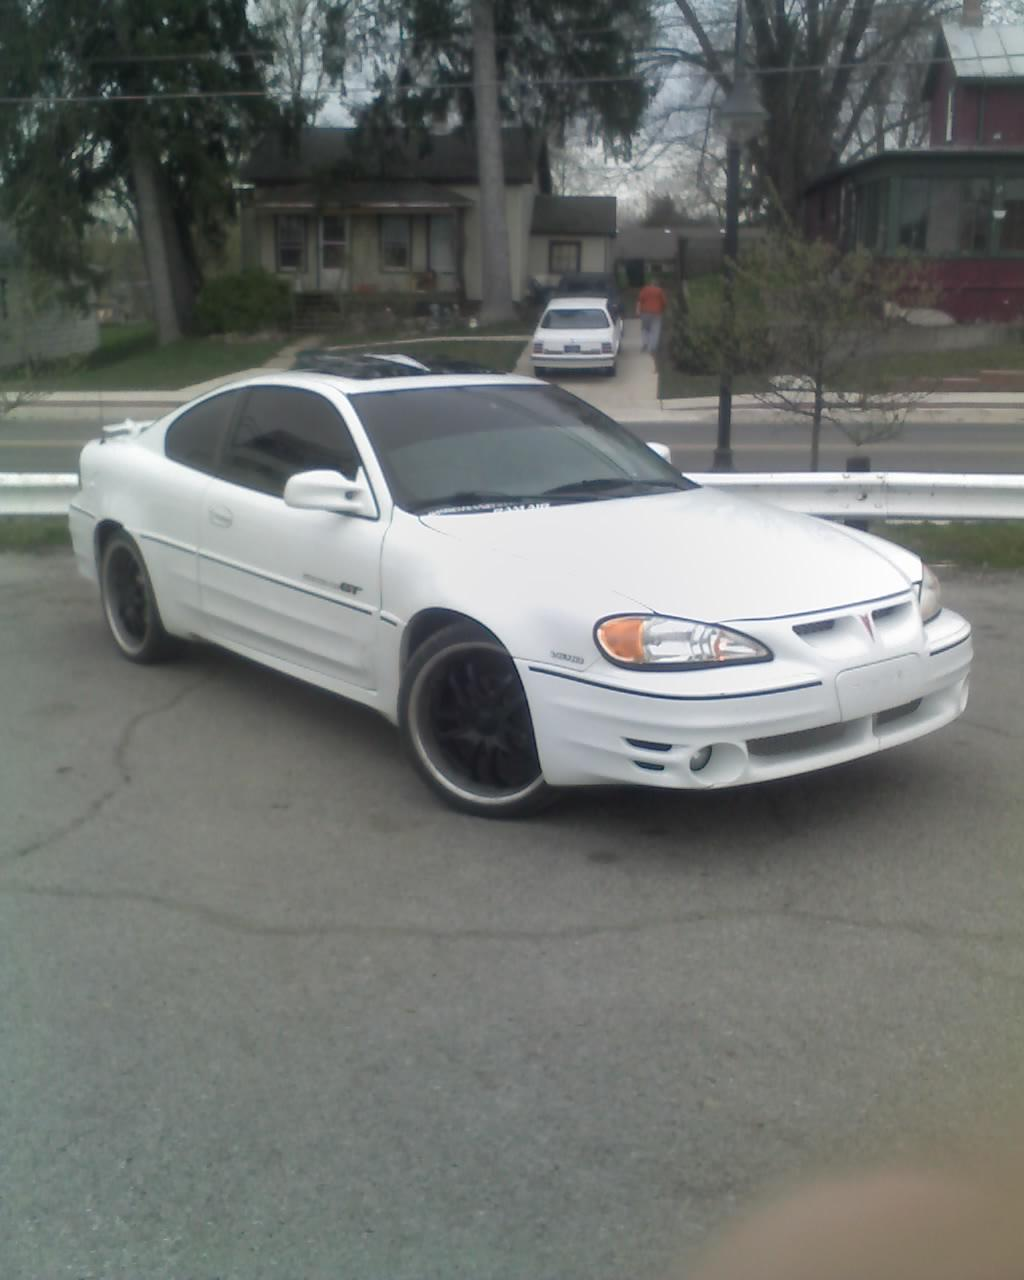 9902GAGT 1999 Pontiac Grand AmGT Coupe 2D Specs, Photos